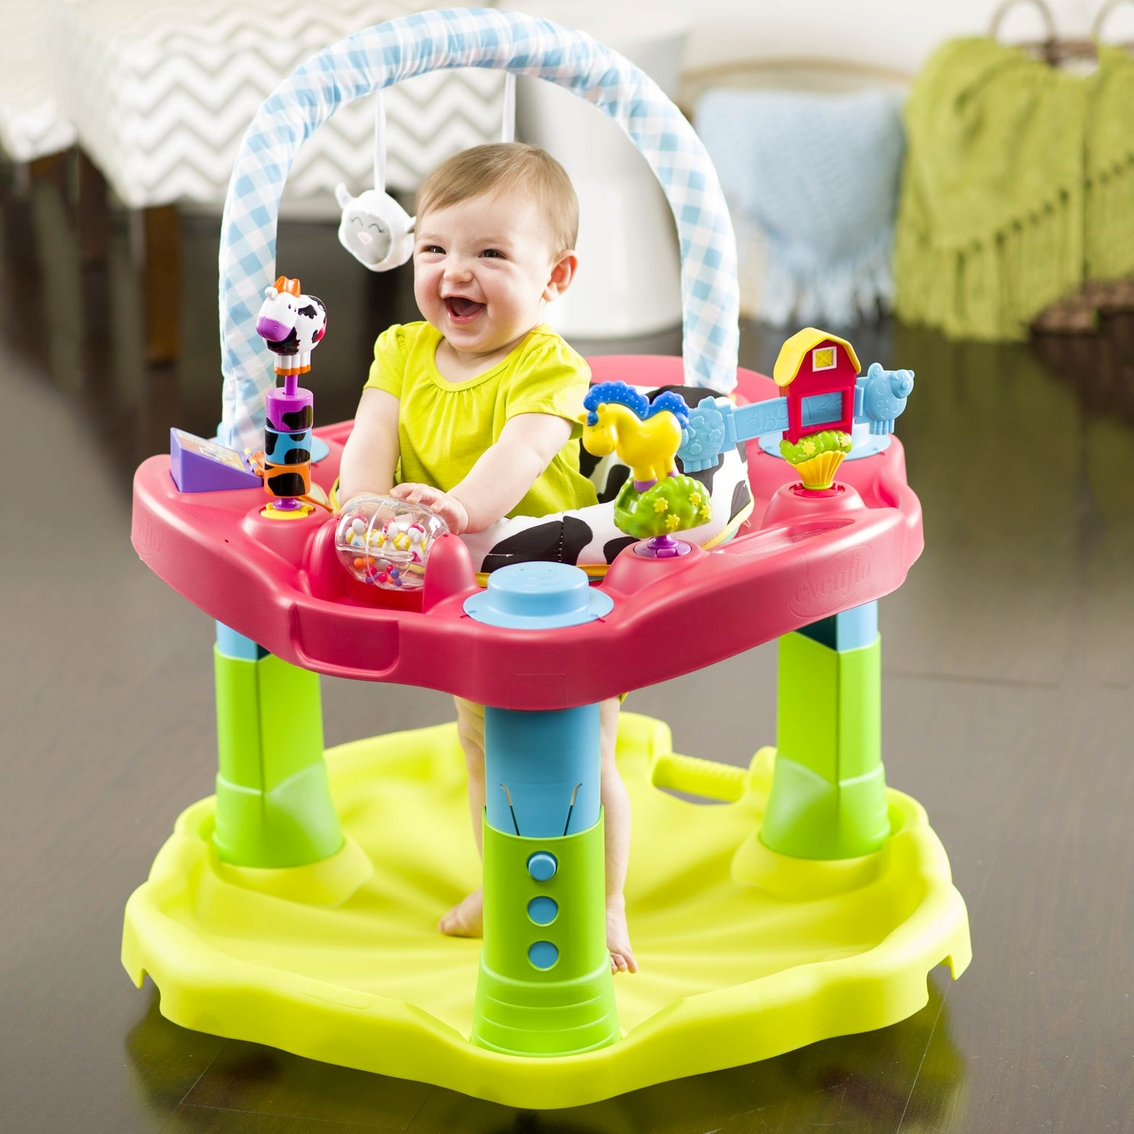 Picture of: Evenflo Exersaucer Mega Saucer Activity Centers Walkers Baby Toys Shop The Exchange